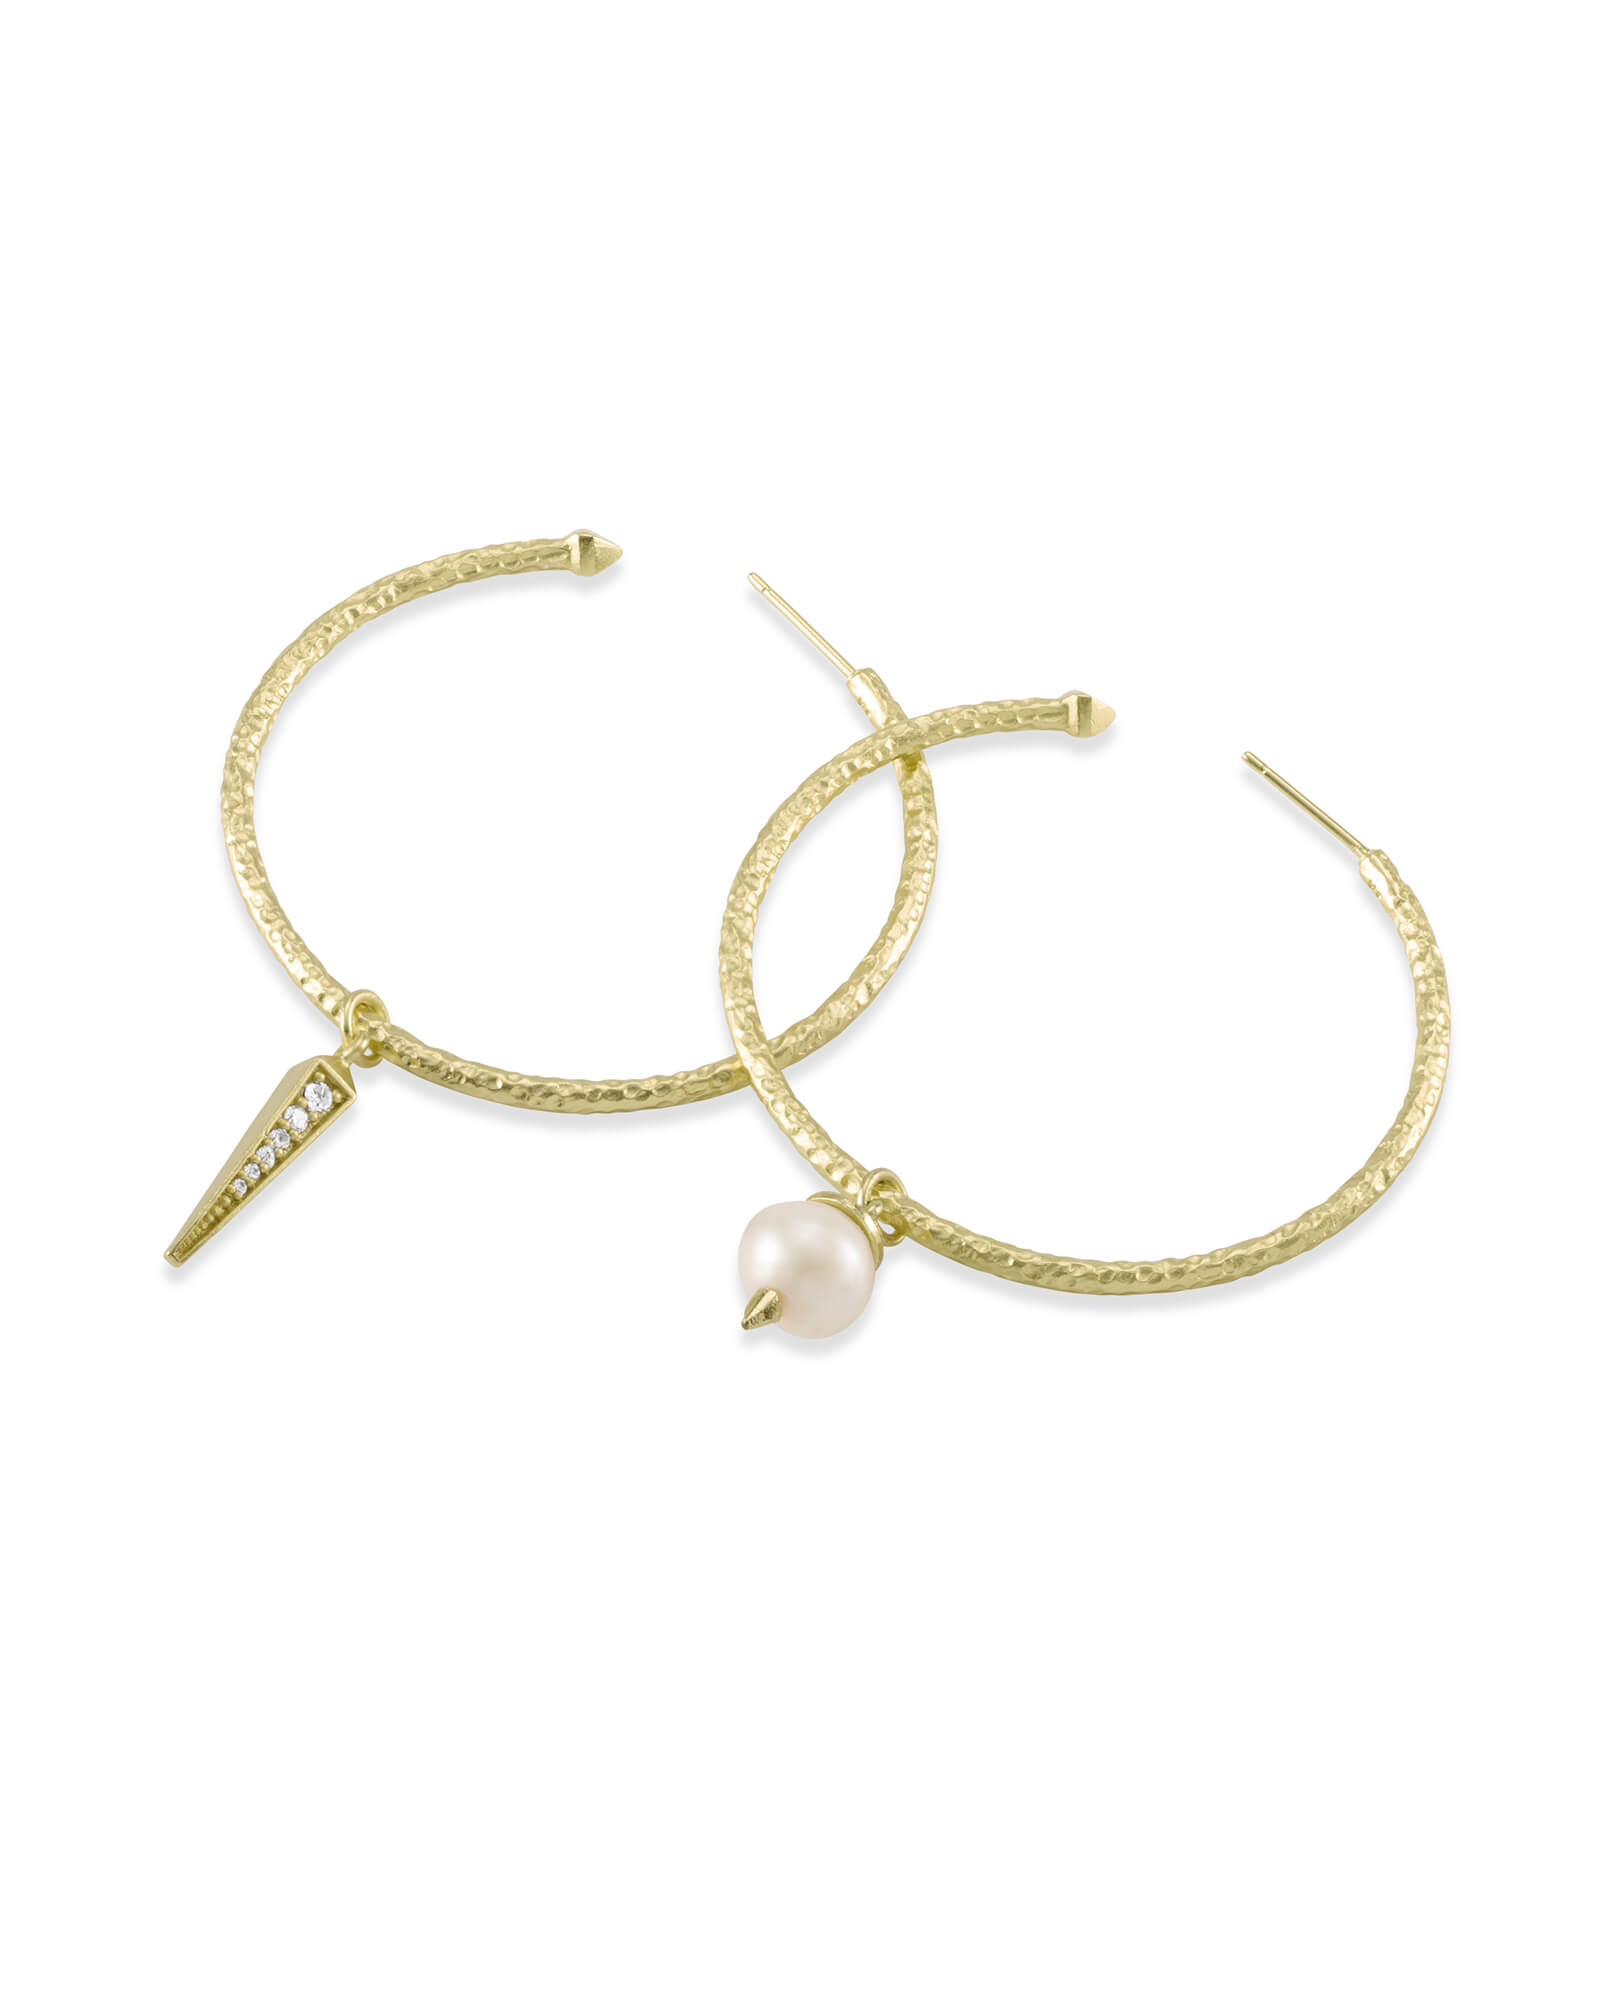 Duality Gold Charm Earrings Set in White Pearl